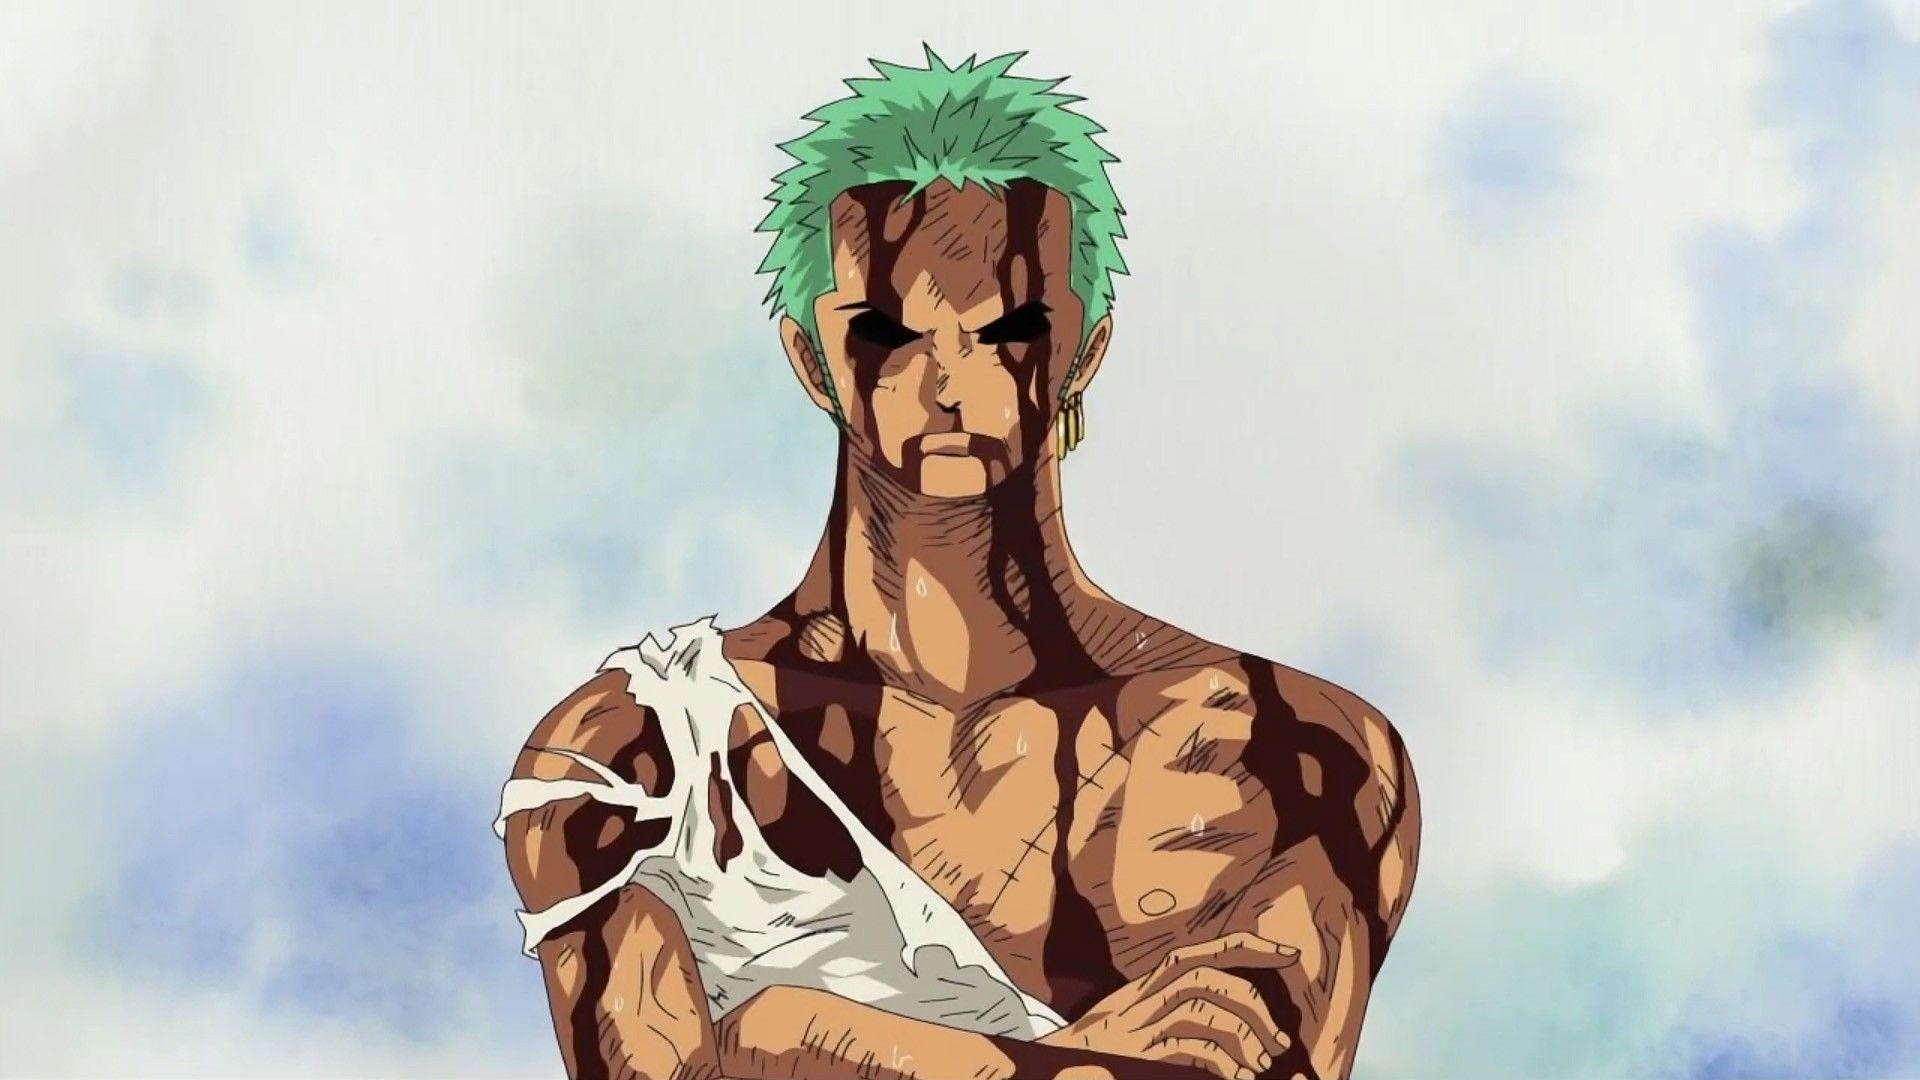 Wallpapers For > One Piece Zoro Iphone Wallpaper